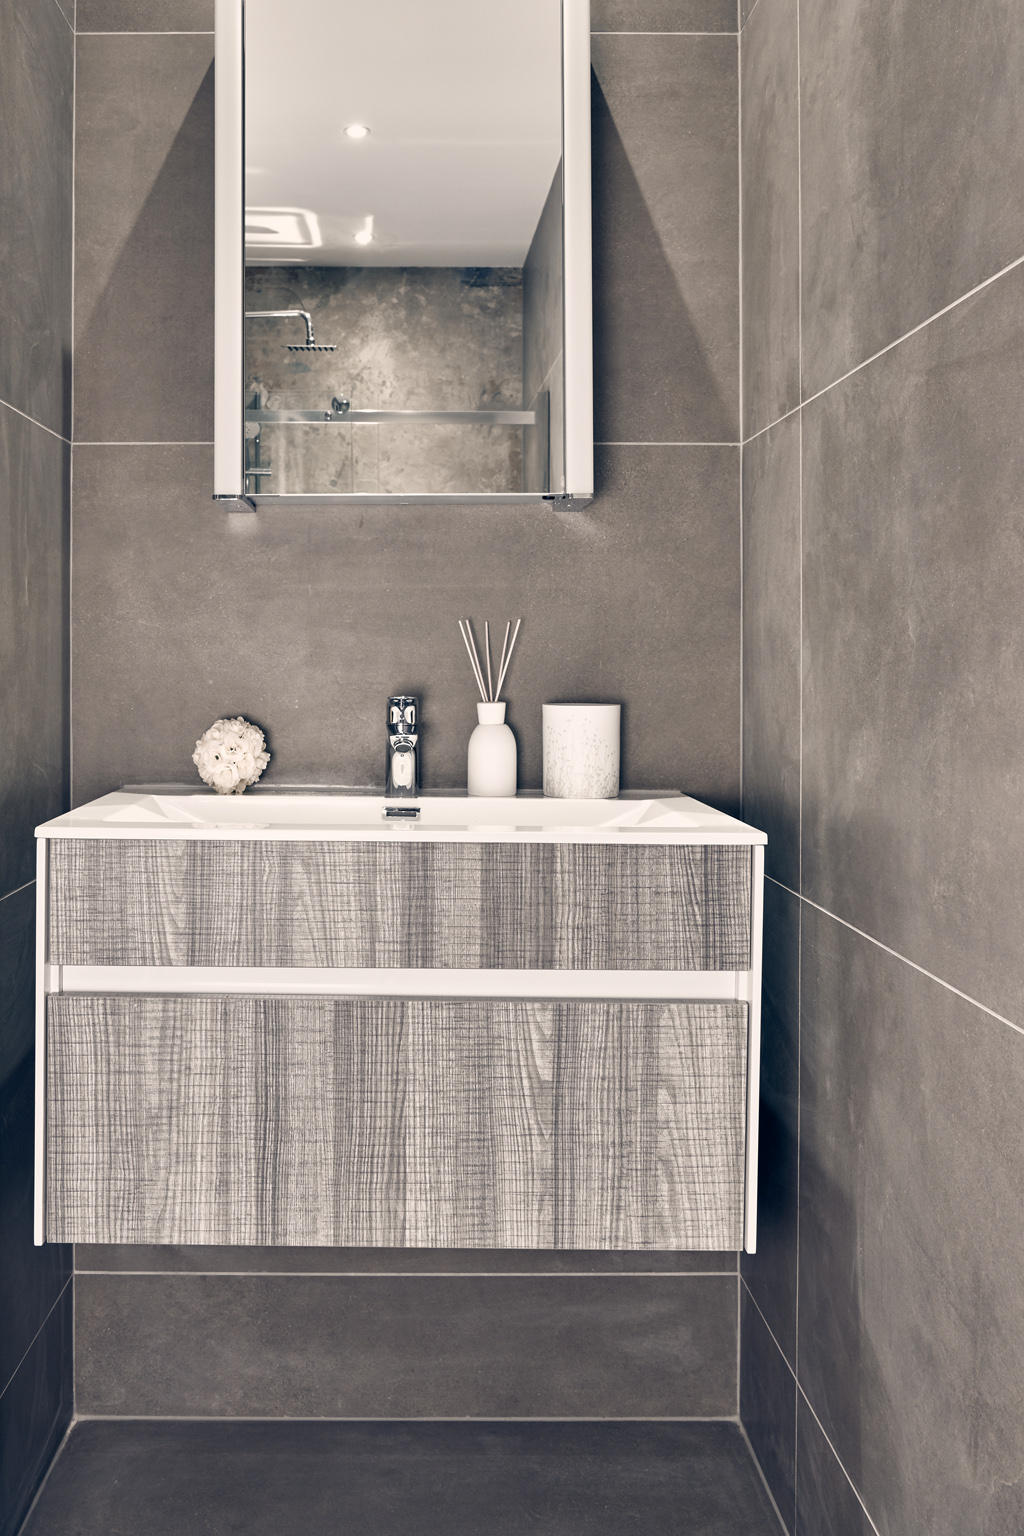 Terra - Grip porcelain tile from our Depth 20mm, Portland Tile